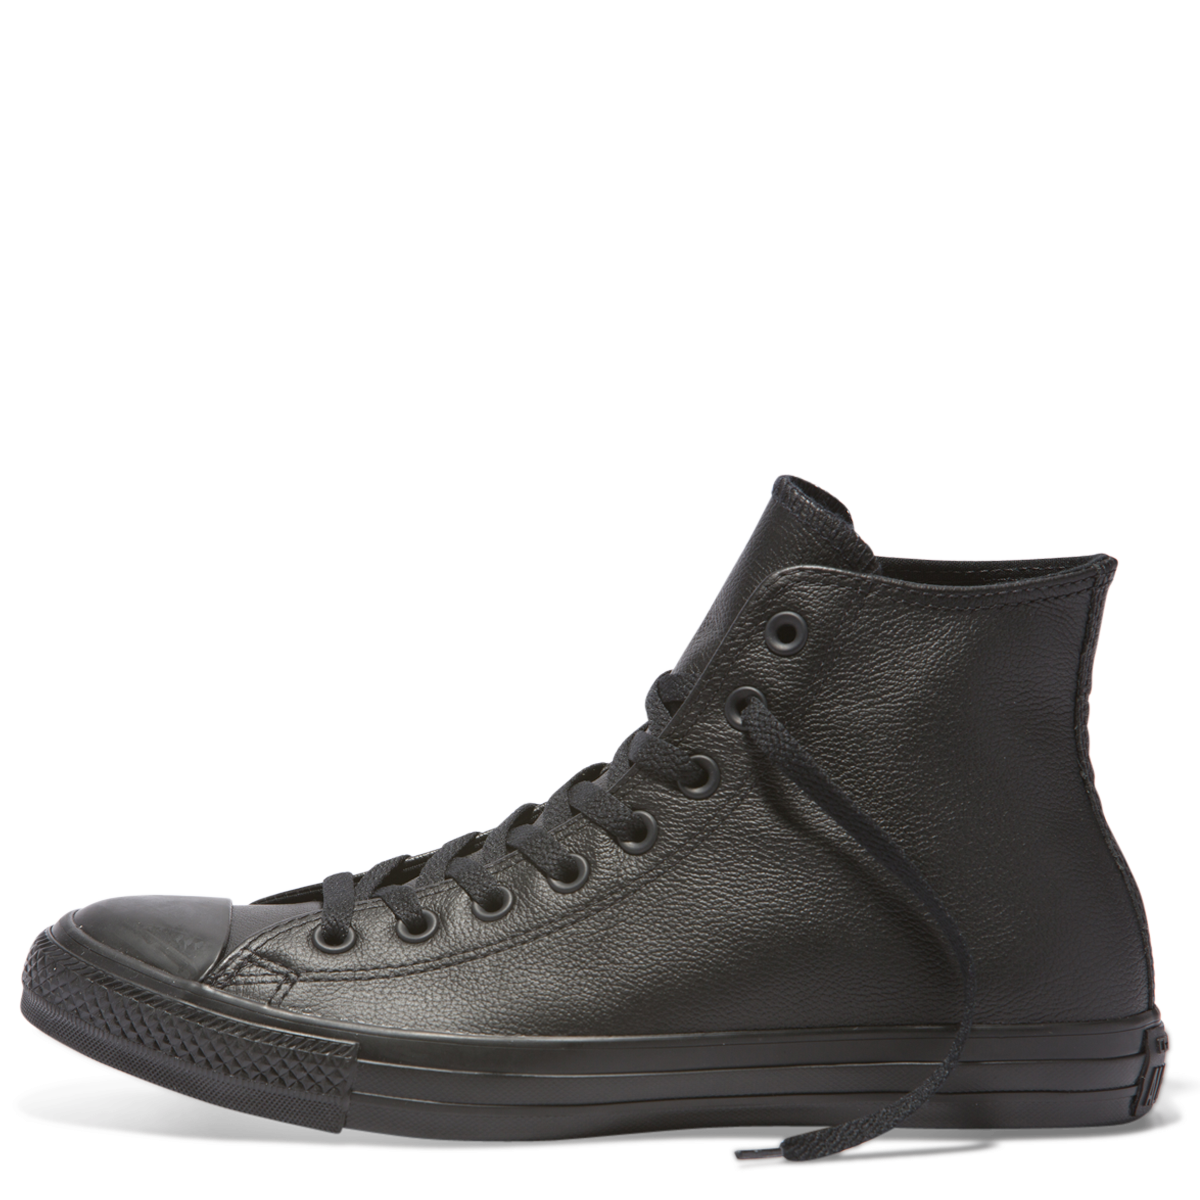 04f518841e95 ... Converse All Star Chuck Taylor Hi Black Black Leather More sizes Black  Leather Converse Famous Rock ...